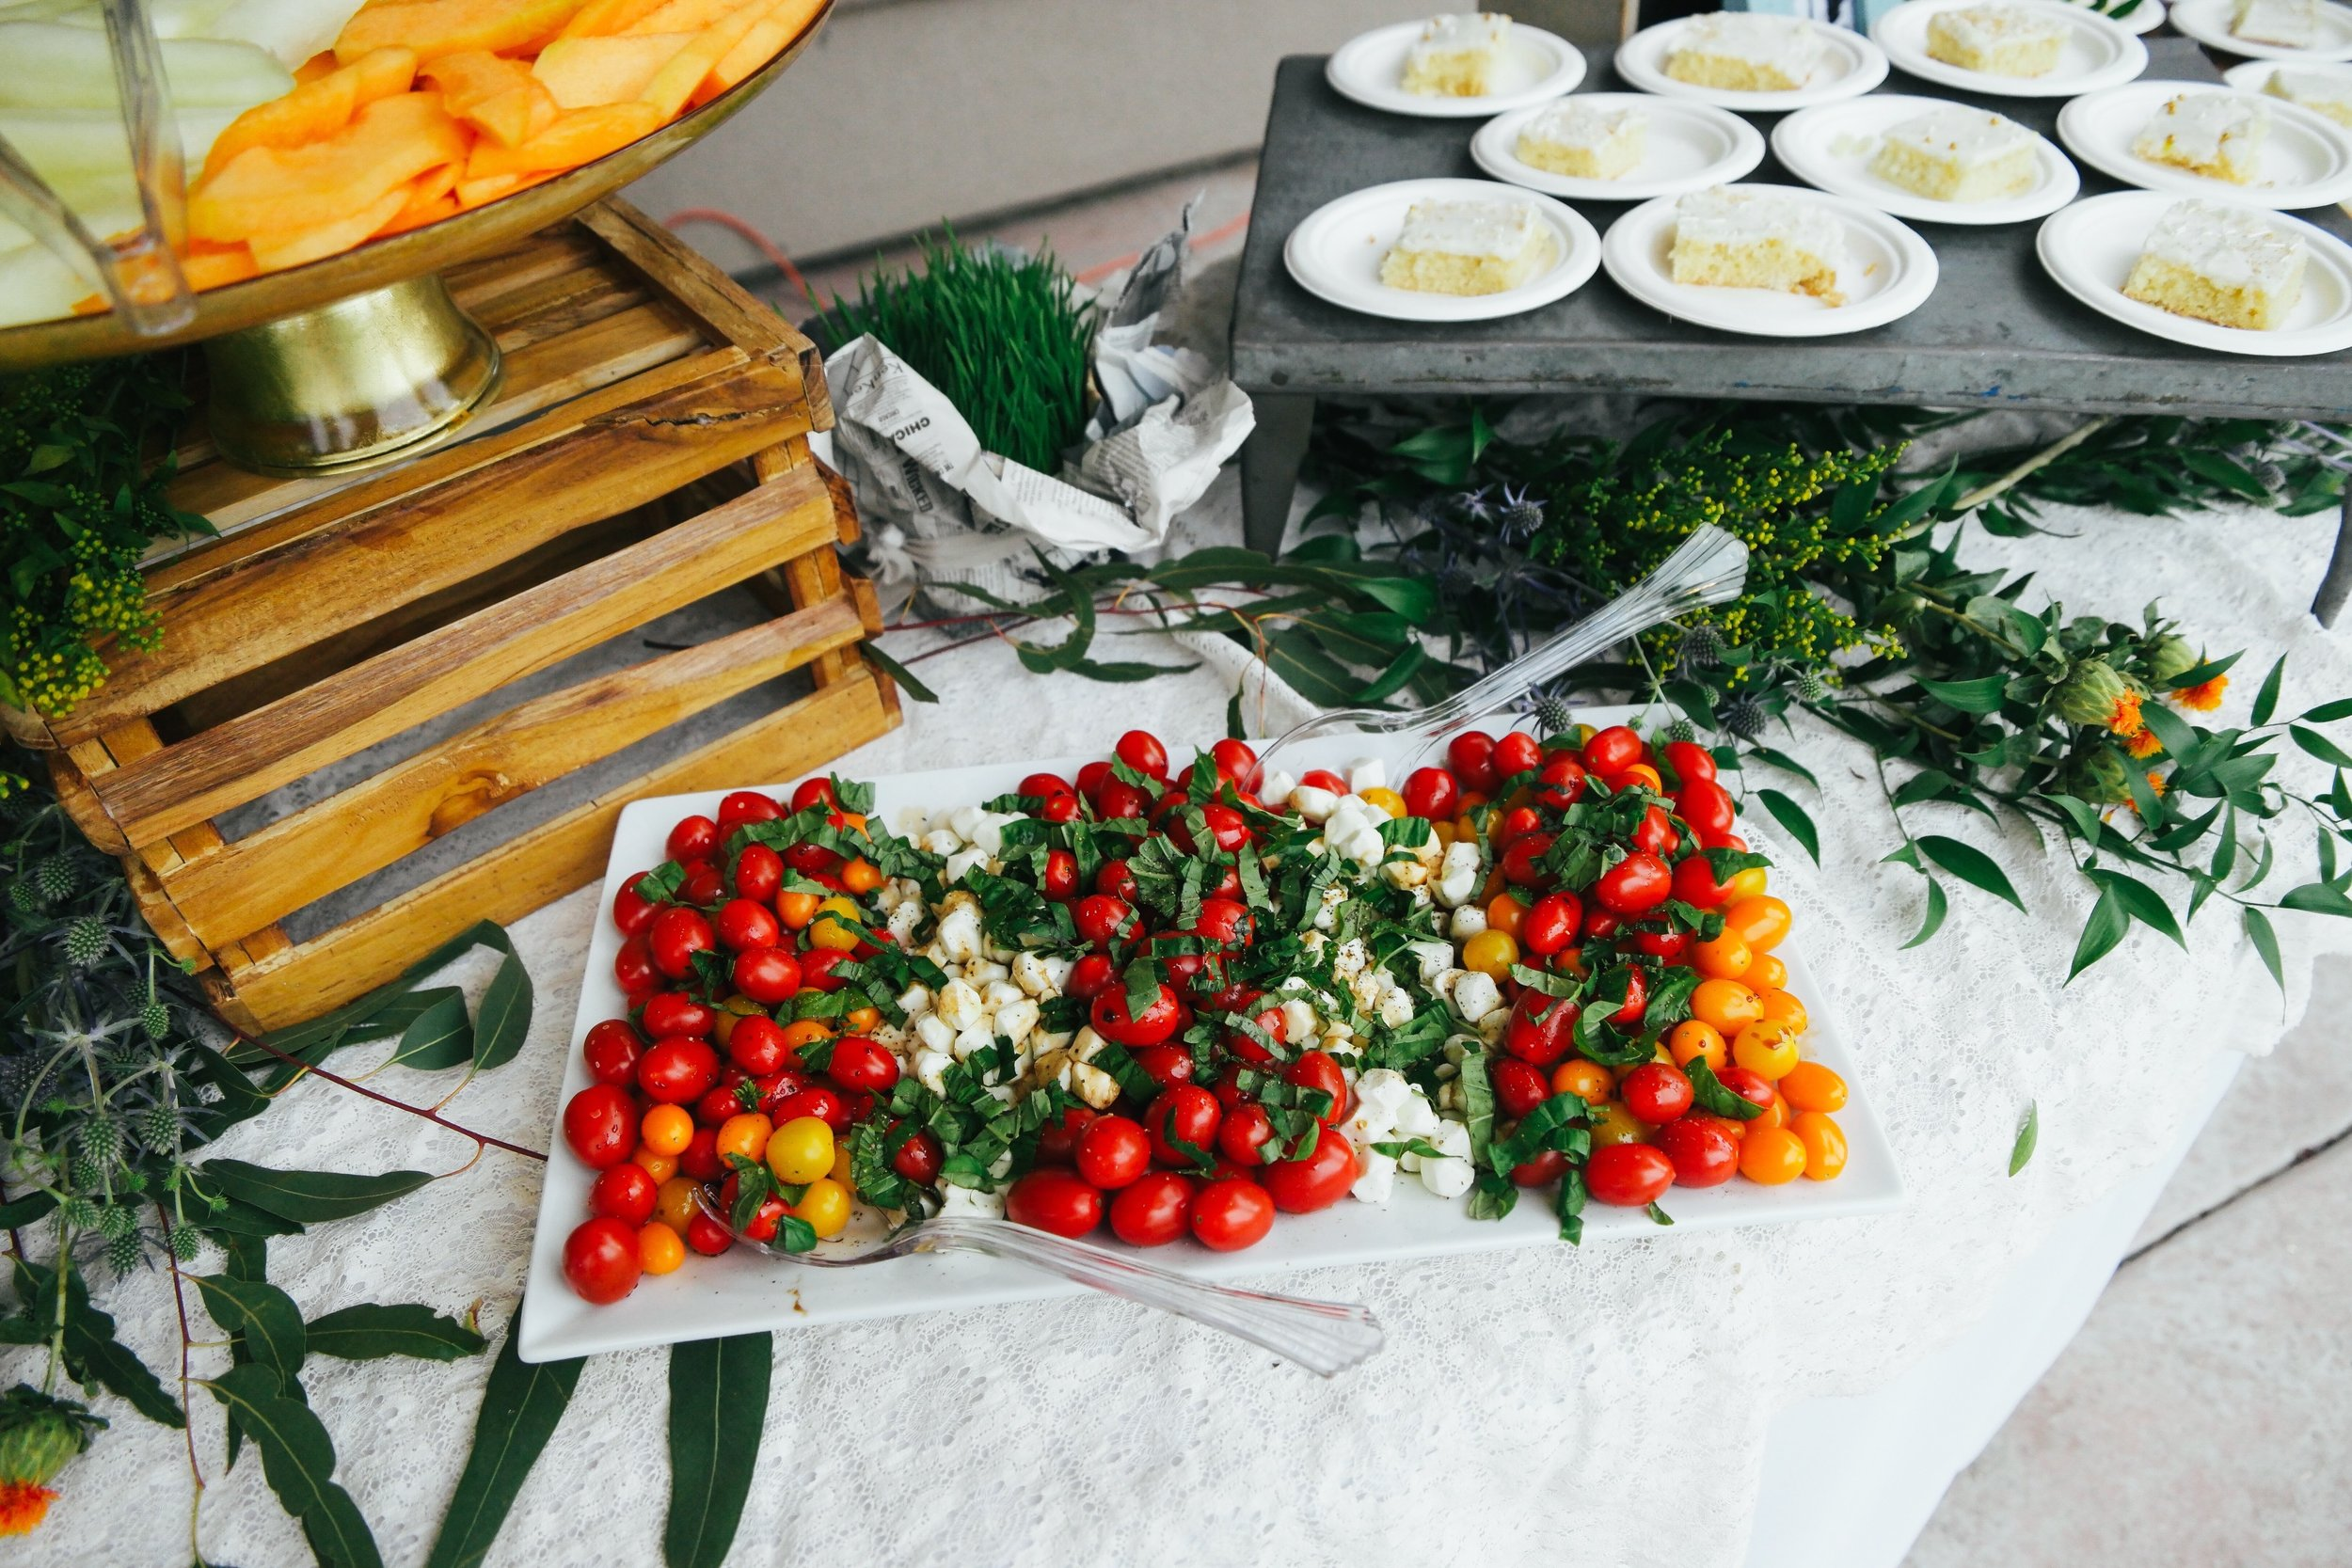 bespoke events and food - we bring the magic.